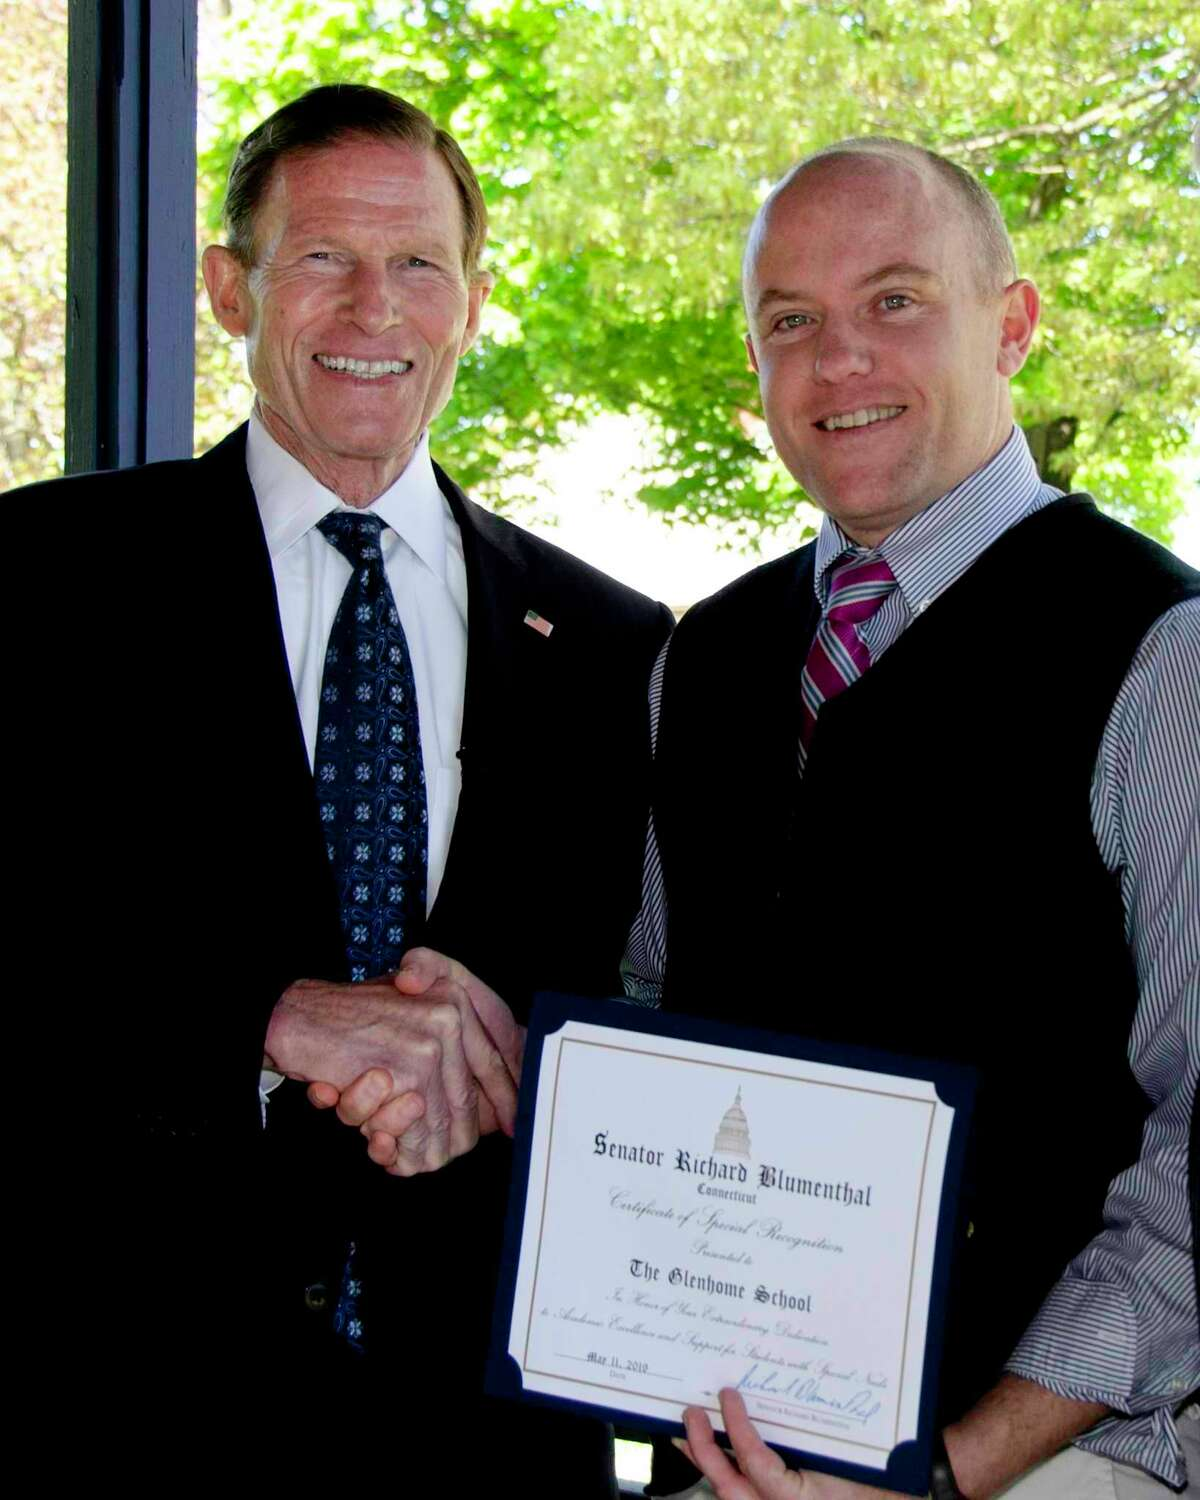 The Glenholme School in Washington was recently awarded a certificate of recognition for excellence in the field of special education by U.S. Sen. Richard Blumenthal. Above, Glenholme School Executive Director Noah Noyes, right, accepts the award on behalf of the school community.